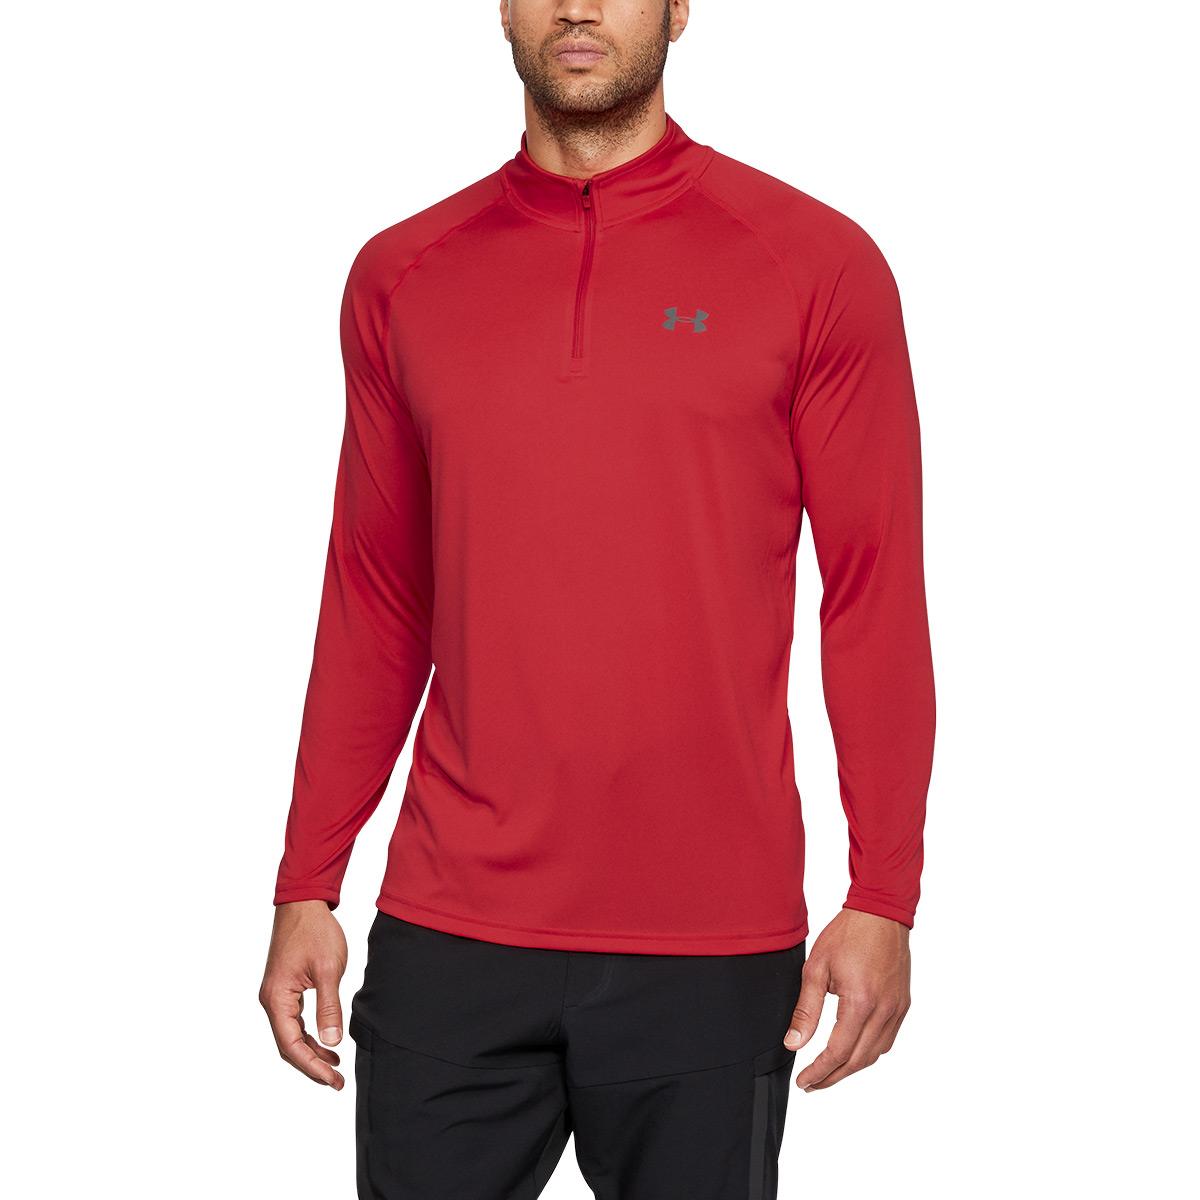 Under-Armour-Mens-UA-Tech-1-4-Zip-Long-Sleeve-Top-Workout-Layer-27-OFF-RRP thumbnail 66